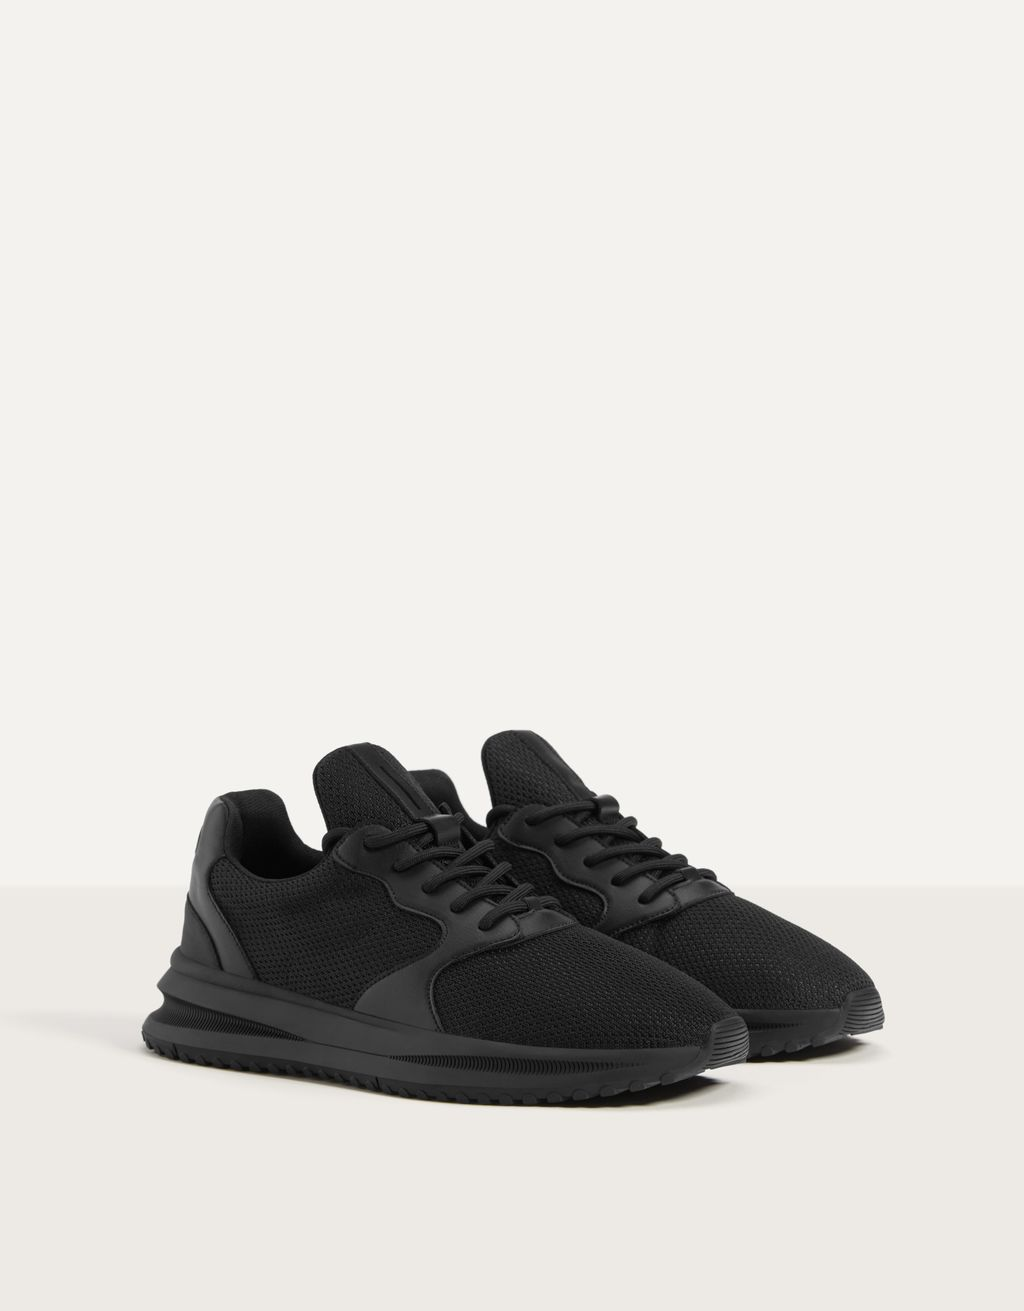 Men's sock-style trainers